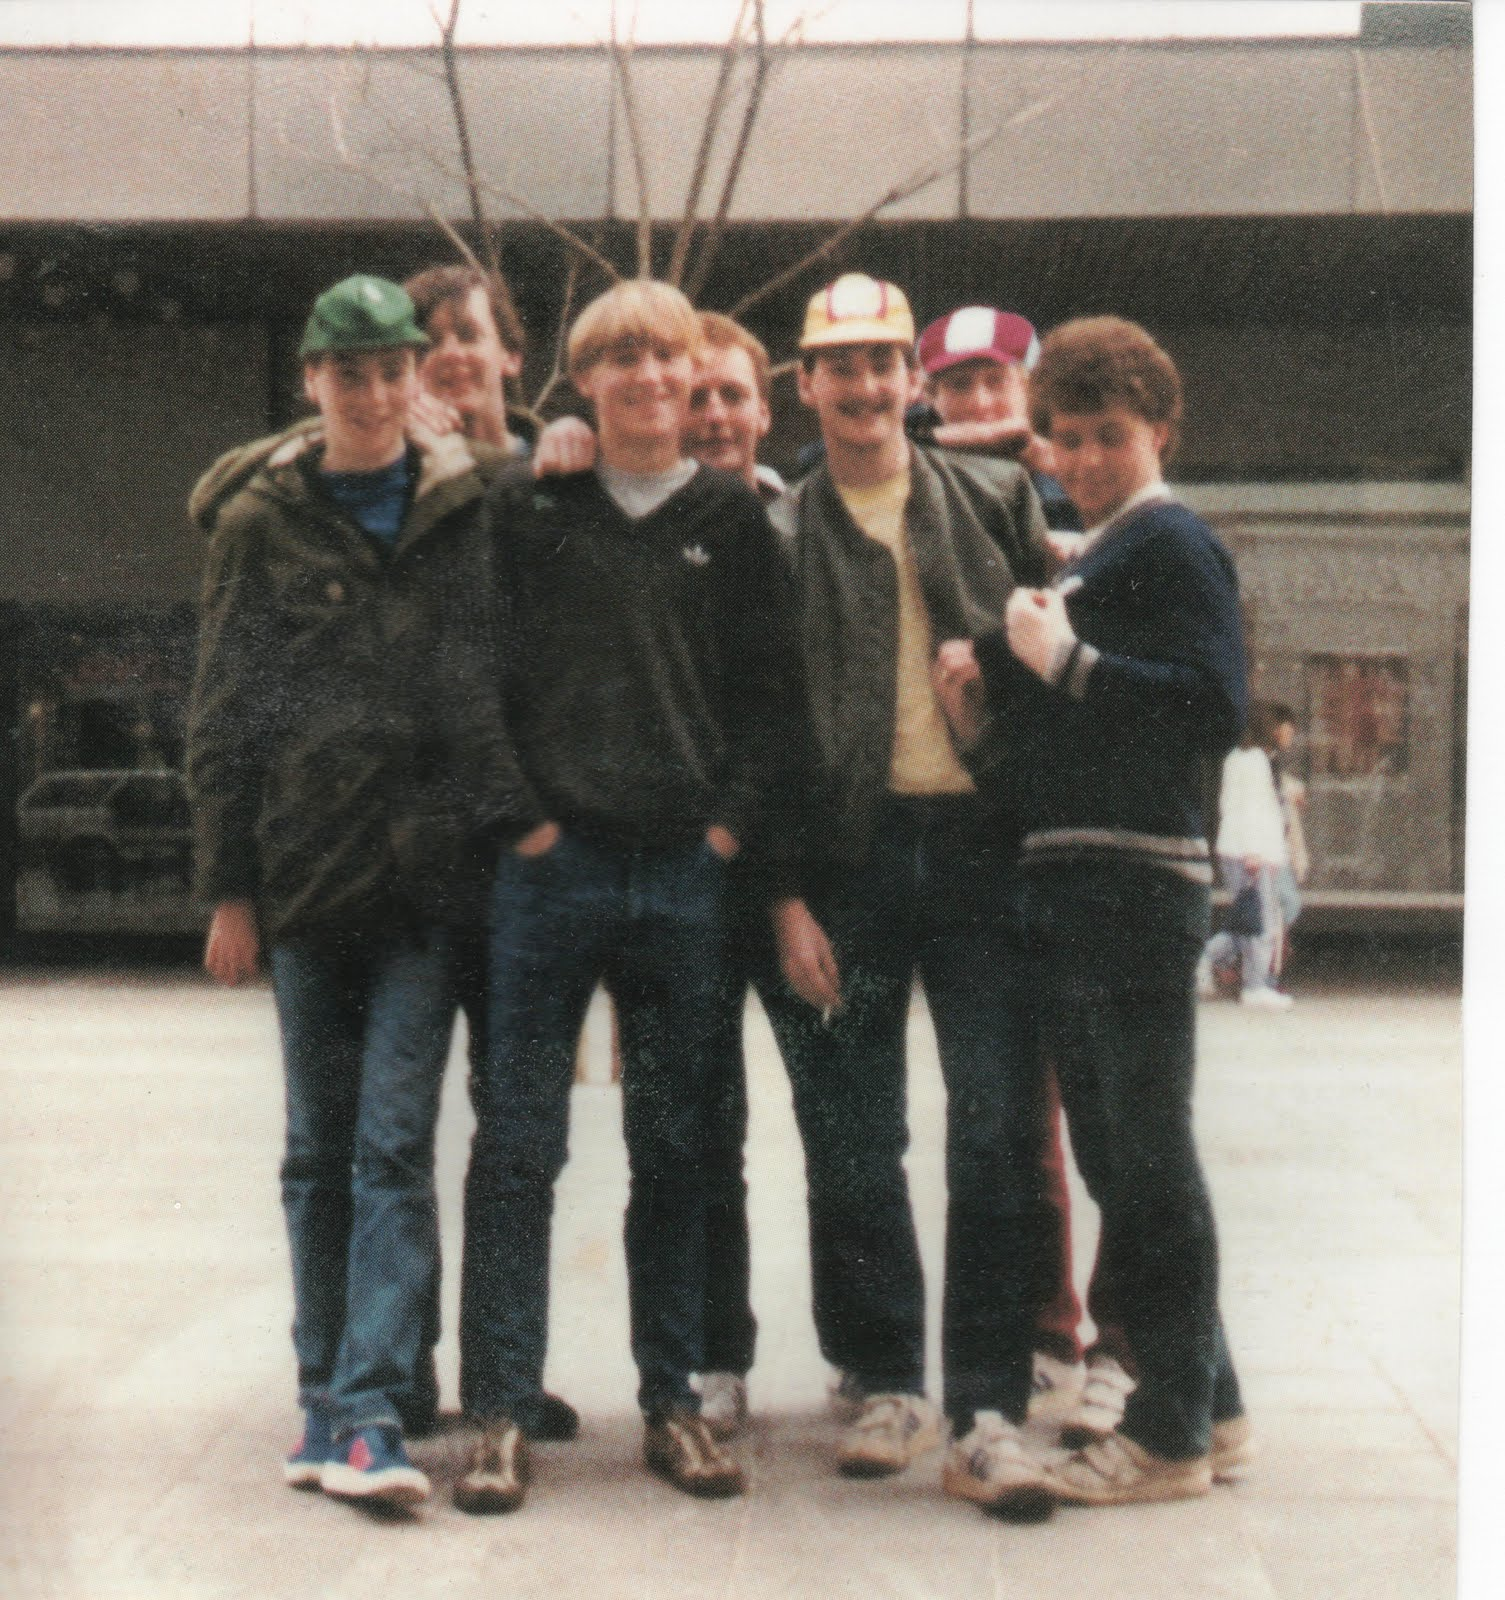 EIGHTIES CASUALS: 30 YEARS AGO TODAY in GERMANY